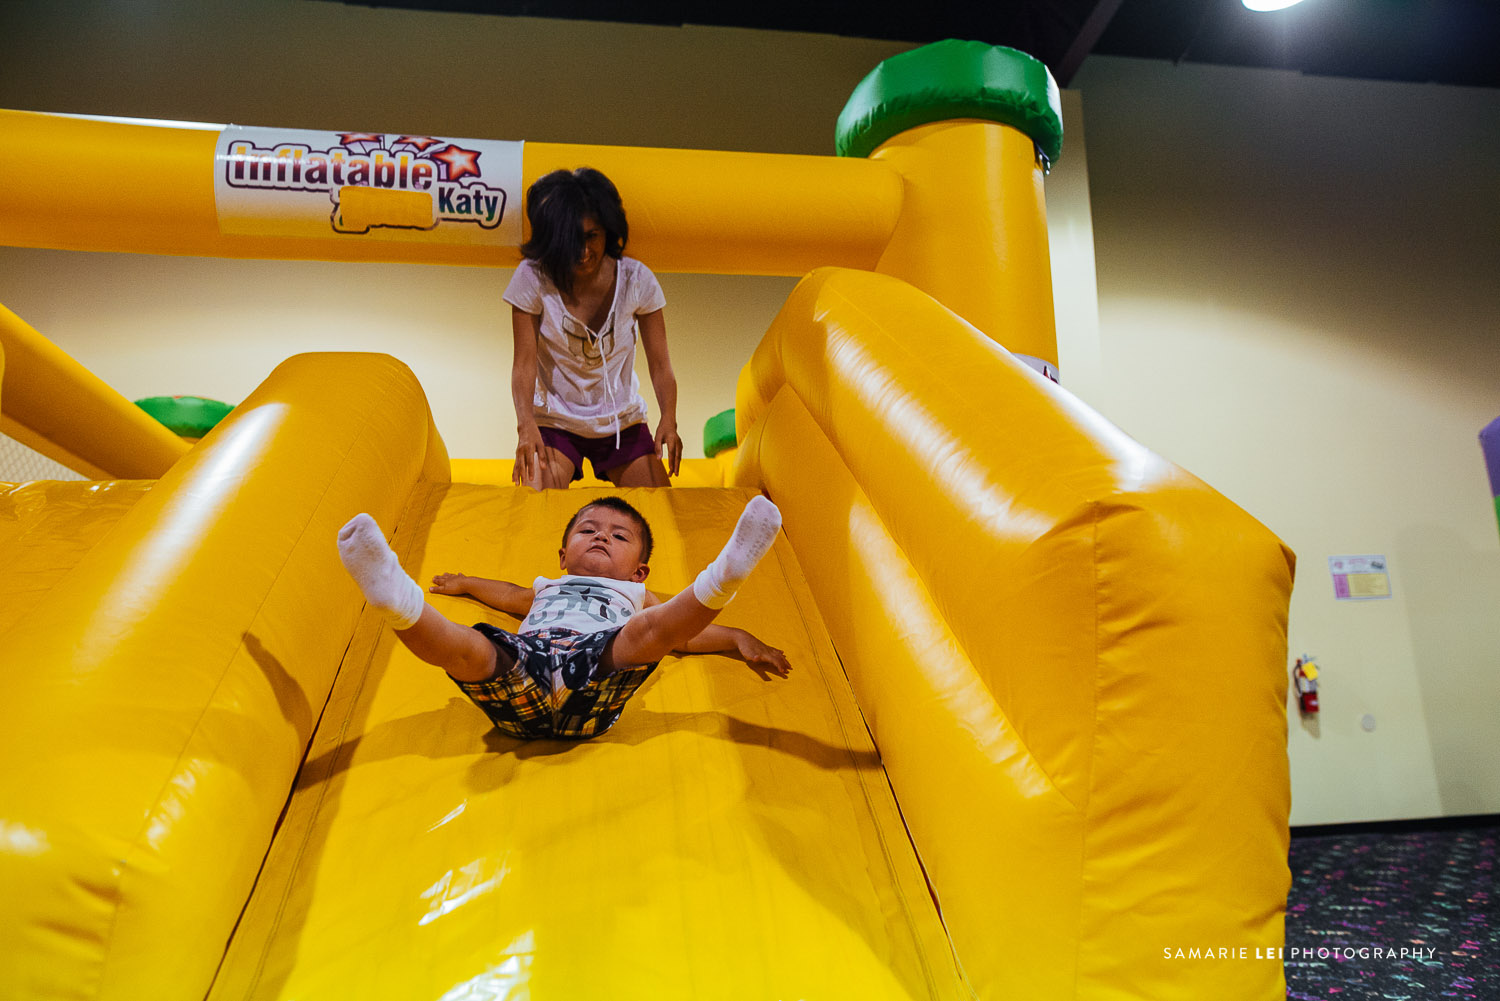 lifestyle day in the life katy family bounce photography-17.jpg